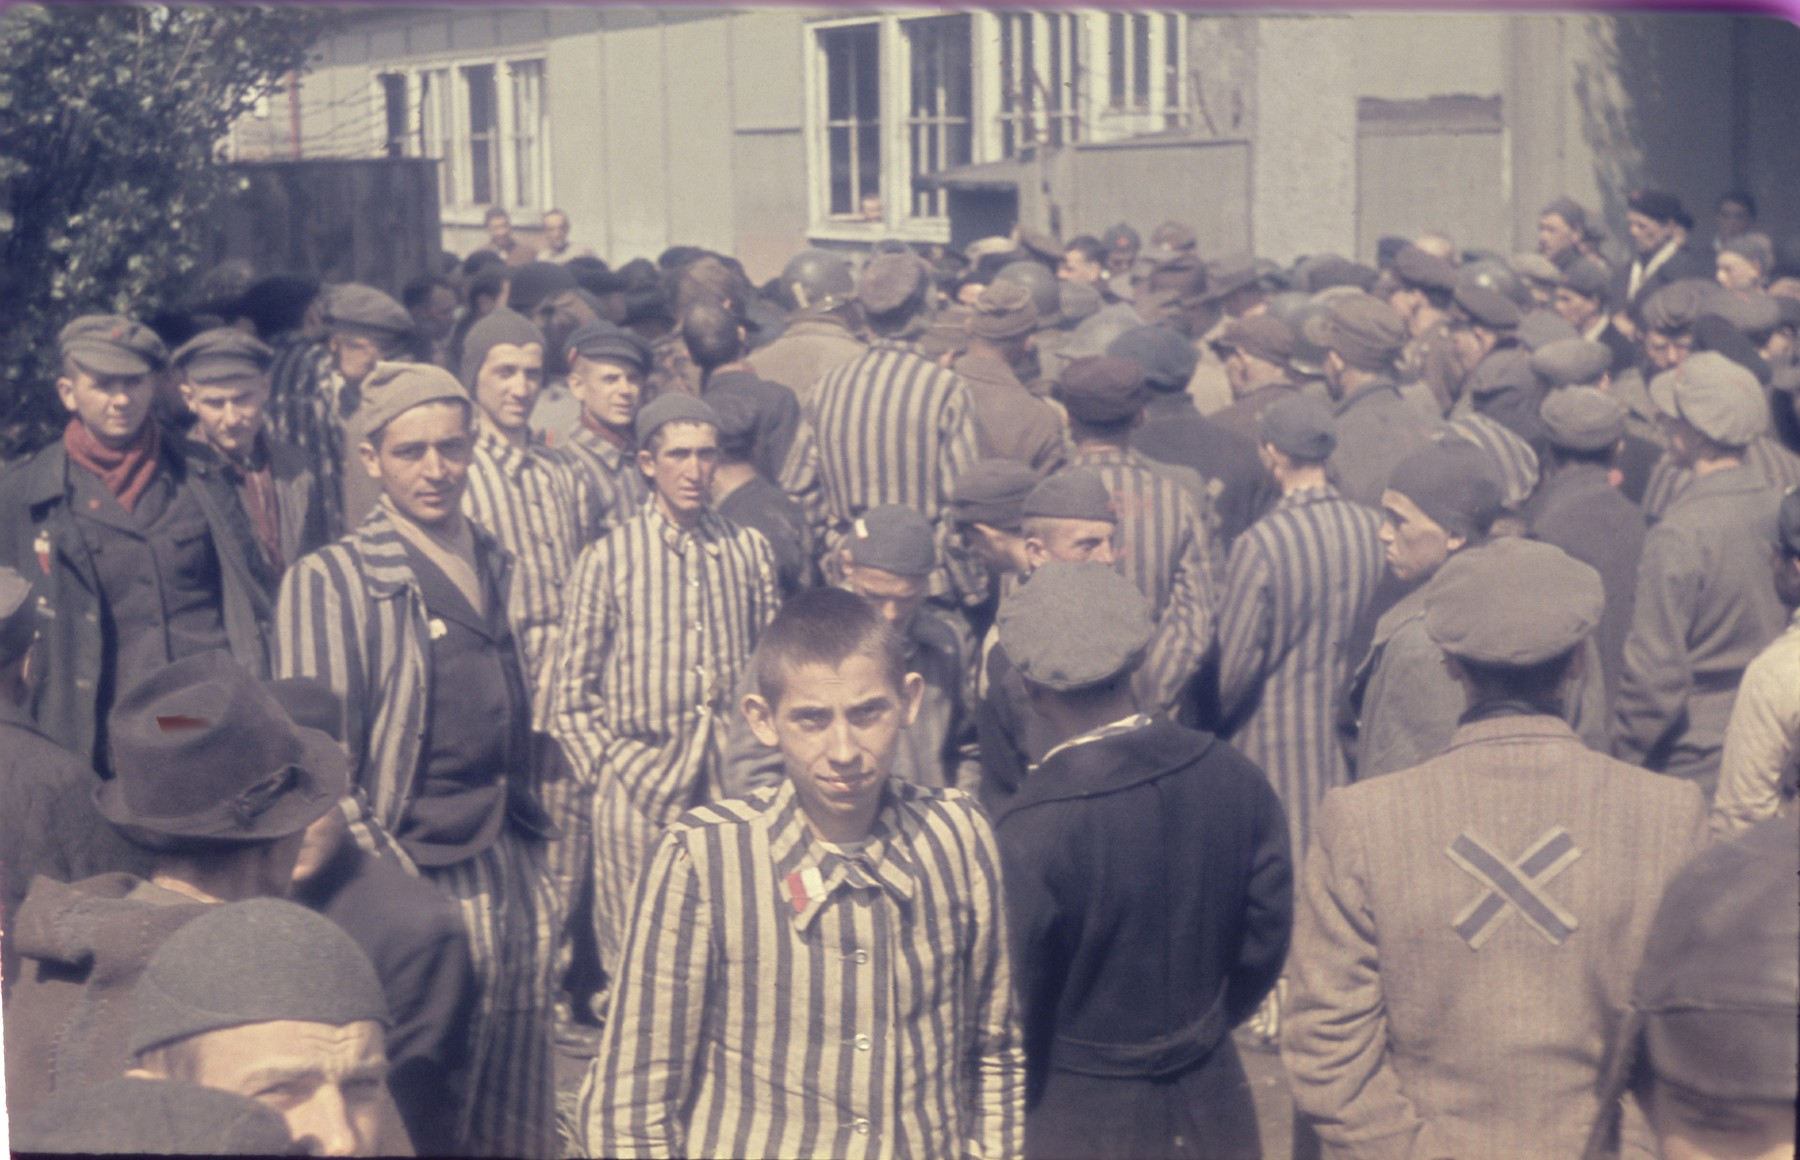 Former prisoners assemble in front of a barracks in the newly liberated Dachau concentration camp.